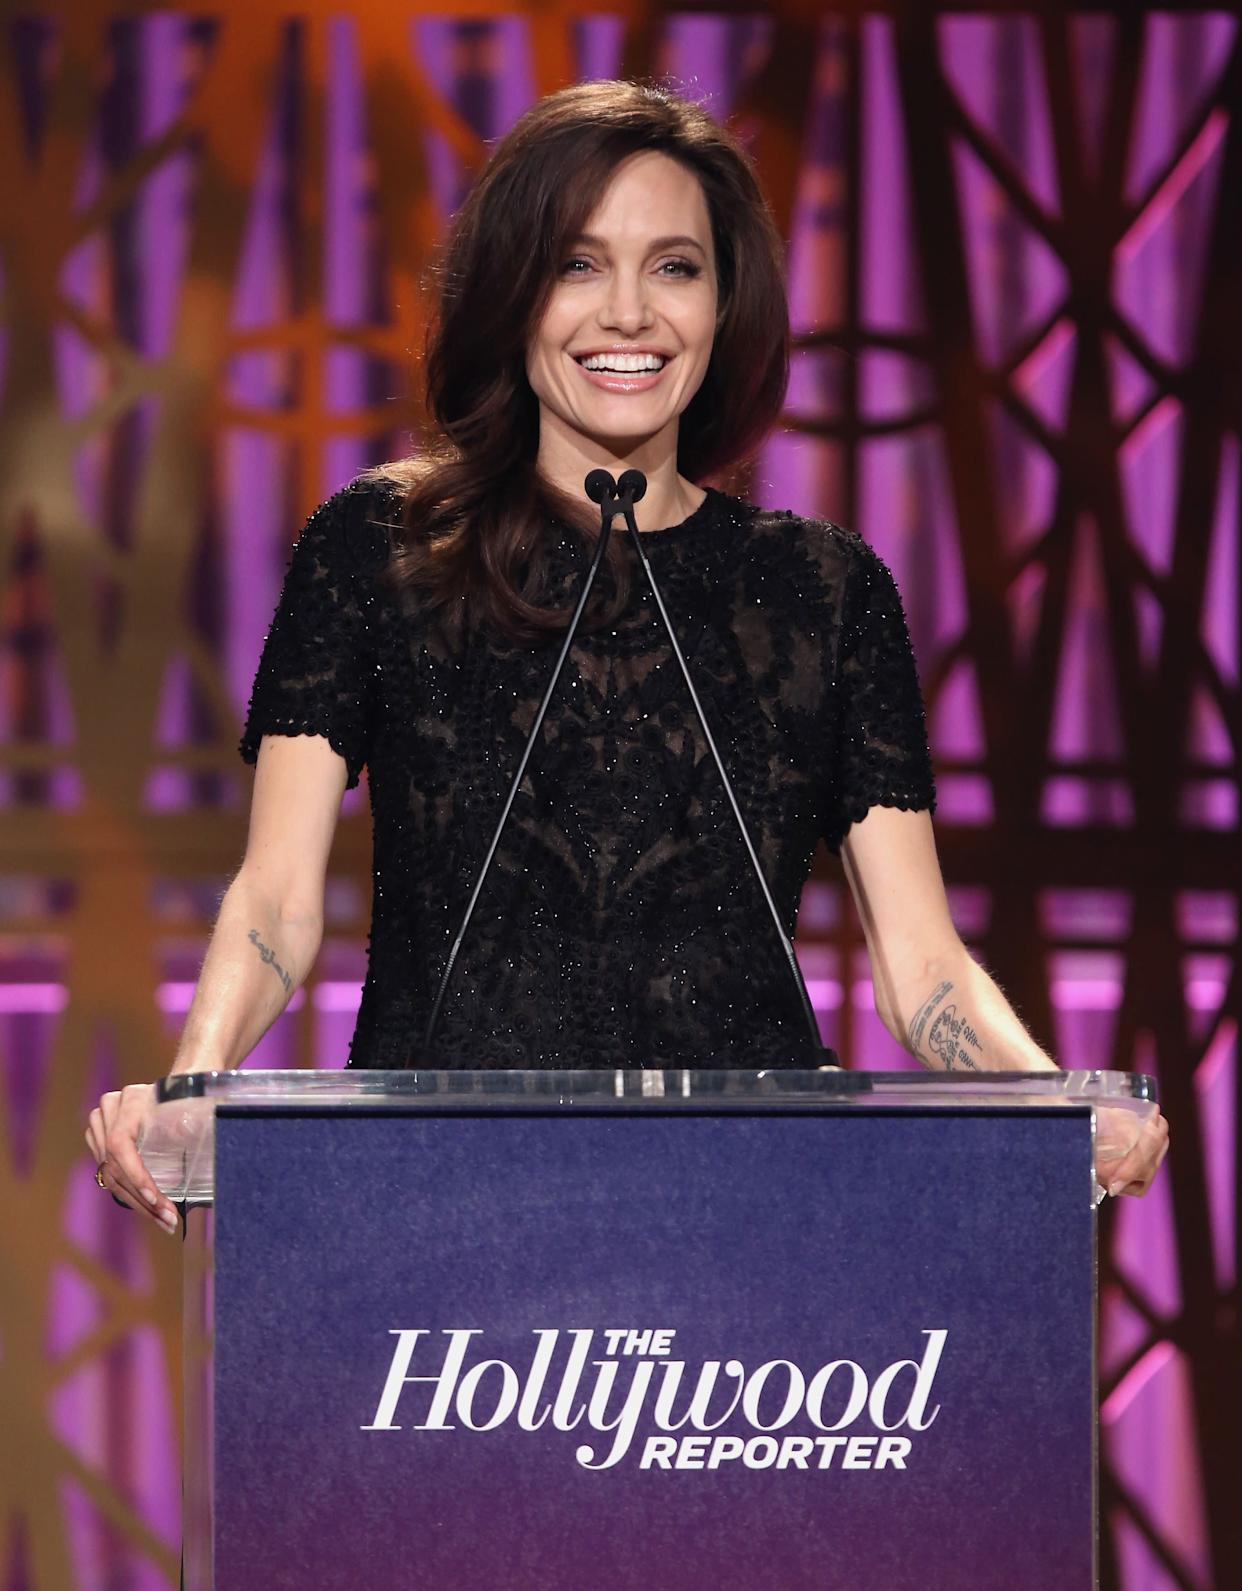 LOS ANGELES, CA - DECEMBER 06: Angelina Jolie speaks onstage at The Hollywood Reporter's 2017 Women In Entertainment Breakfast at Milk Studios on December 6, 2017 in Los Angeles, California. (Photo by Jesse Grant/Getty Images)